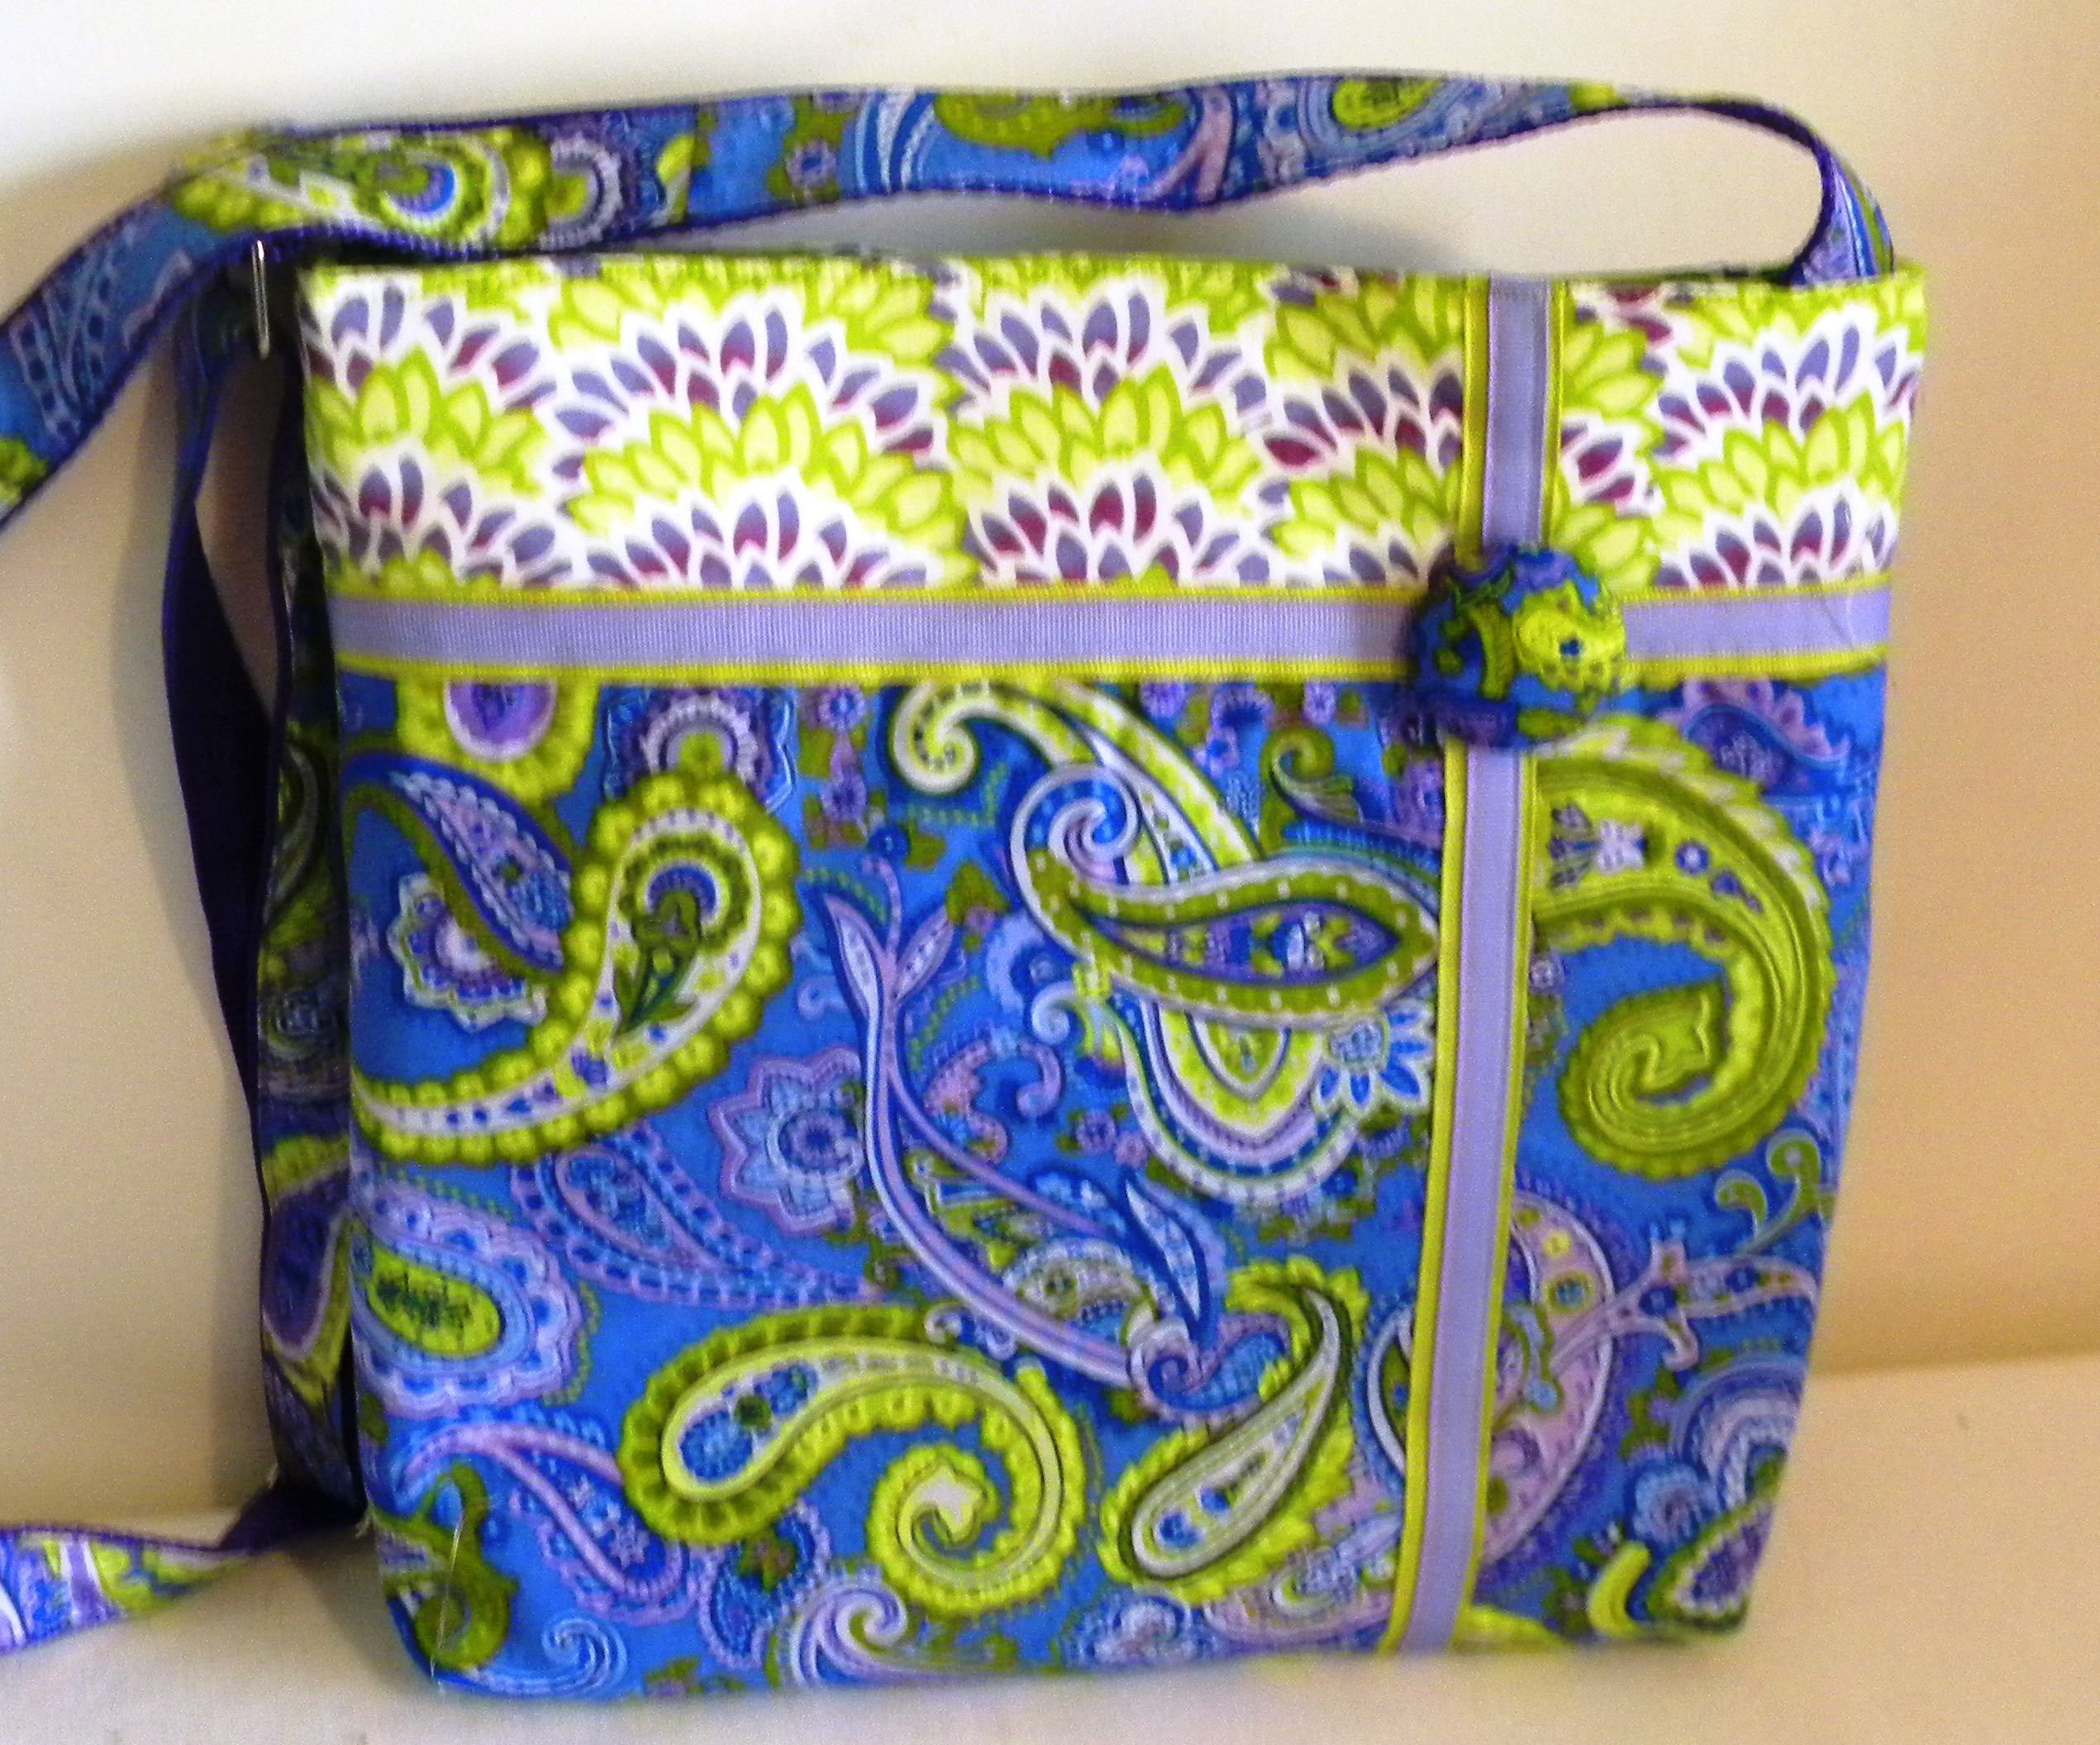 Kay Dee's Bag Boutique will be at the East Greenwich Art Festival September 1st and 2nd.